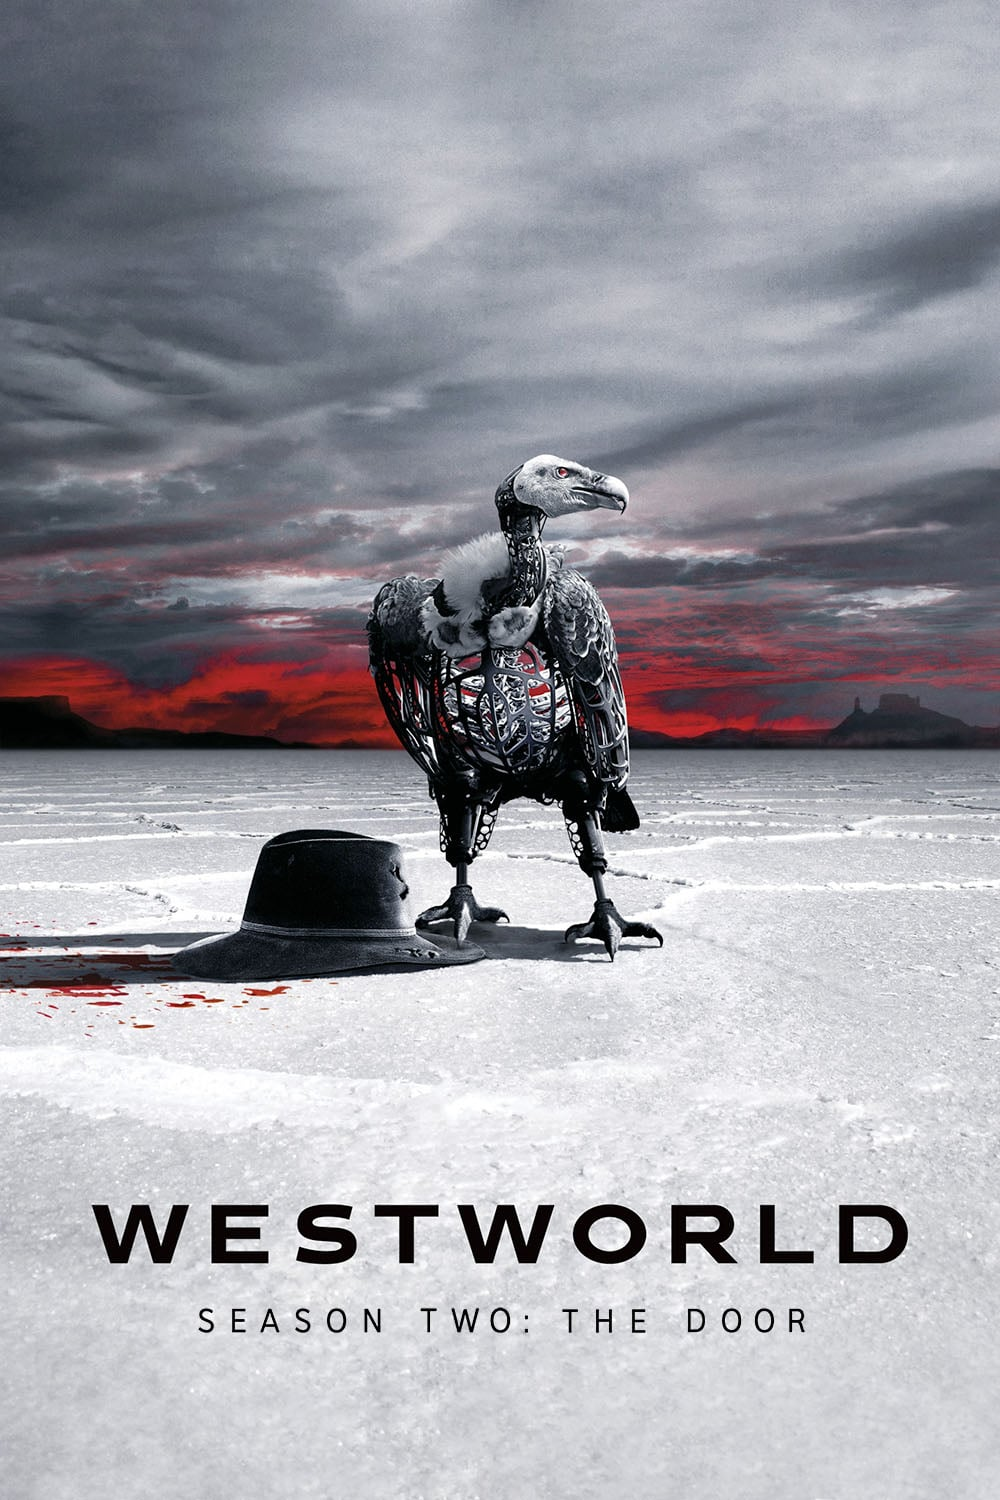 Westworld Season 2 (2018) Episode 1-10 End